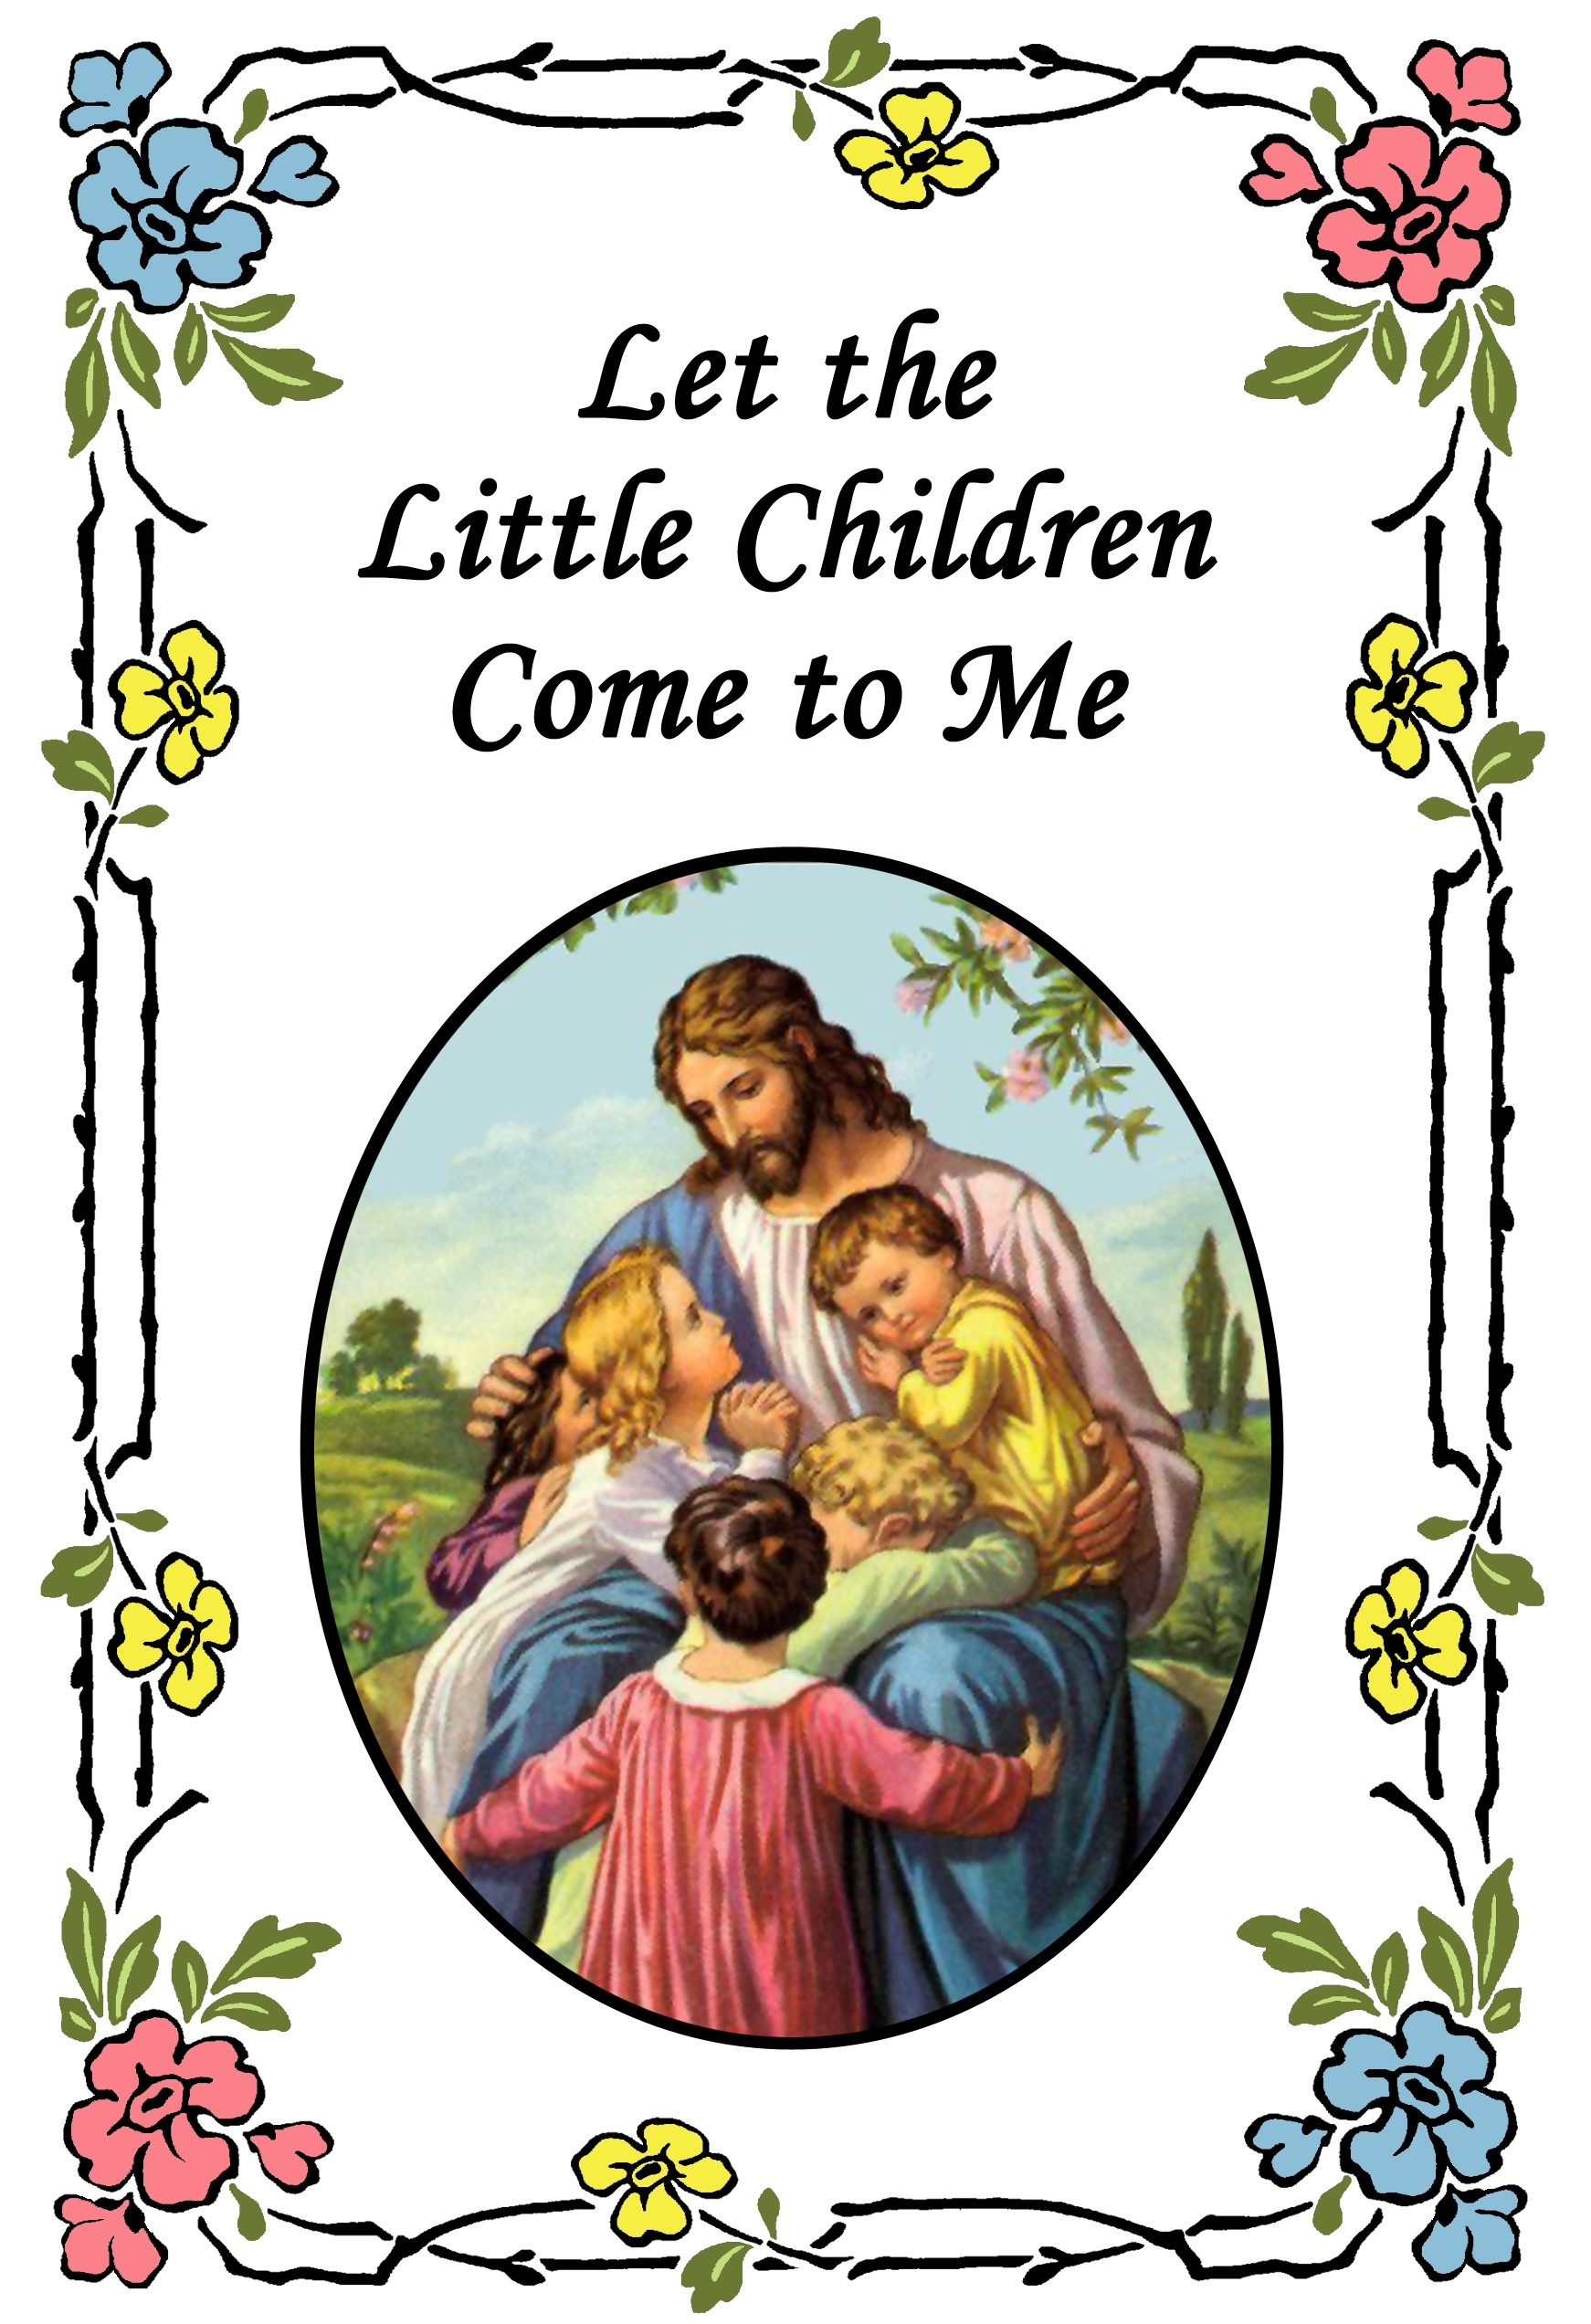 Let the Little Children Come